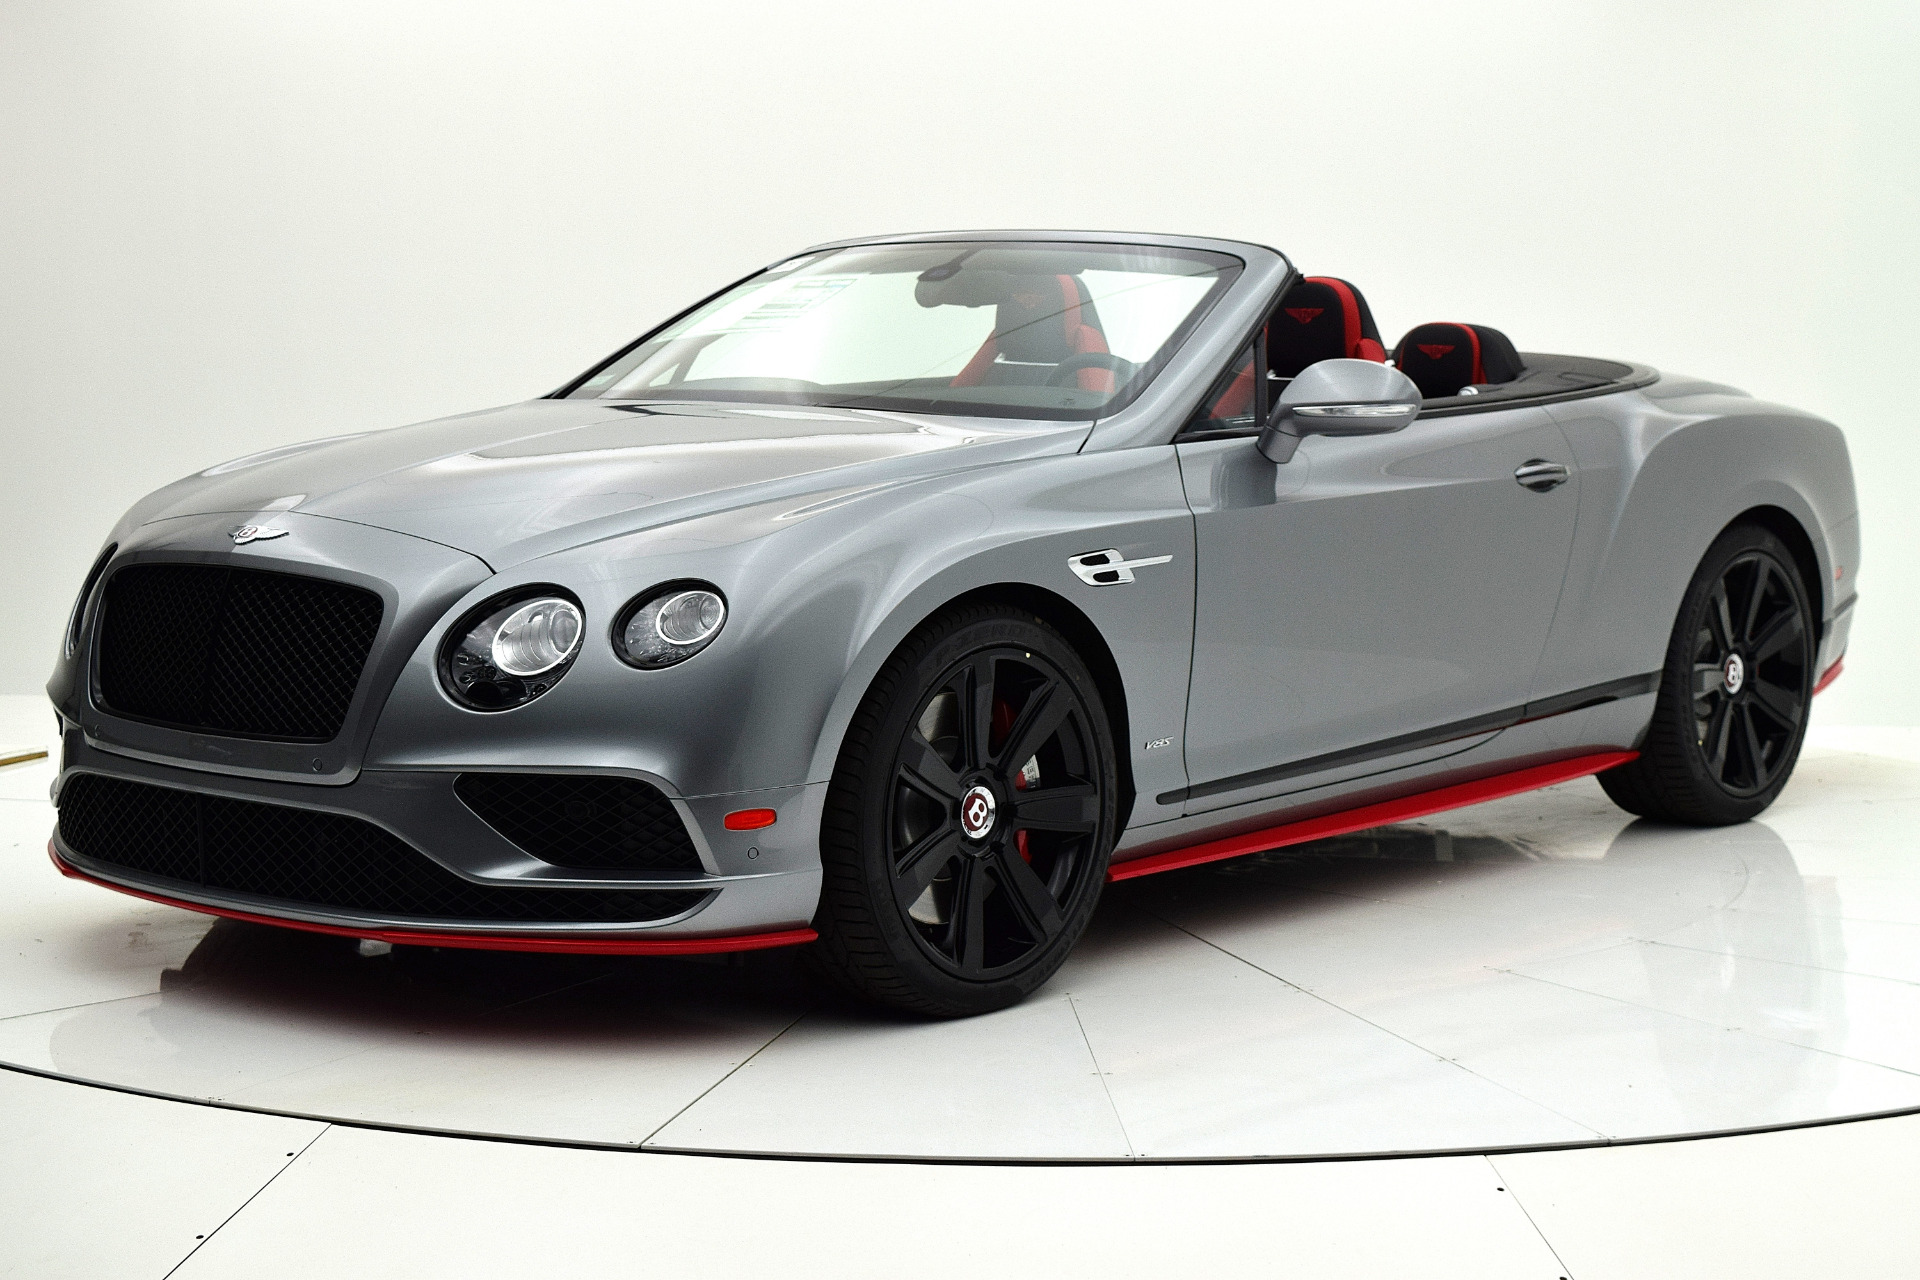 Bentley Continental 2017 For Sale $189880 Stock Number 17BE159